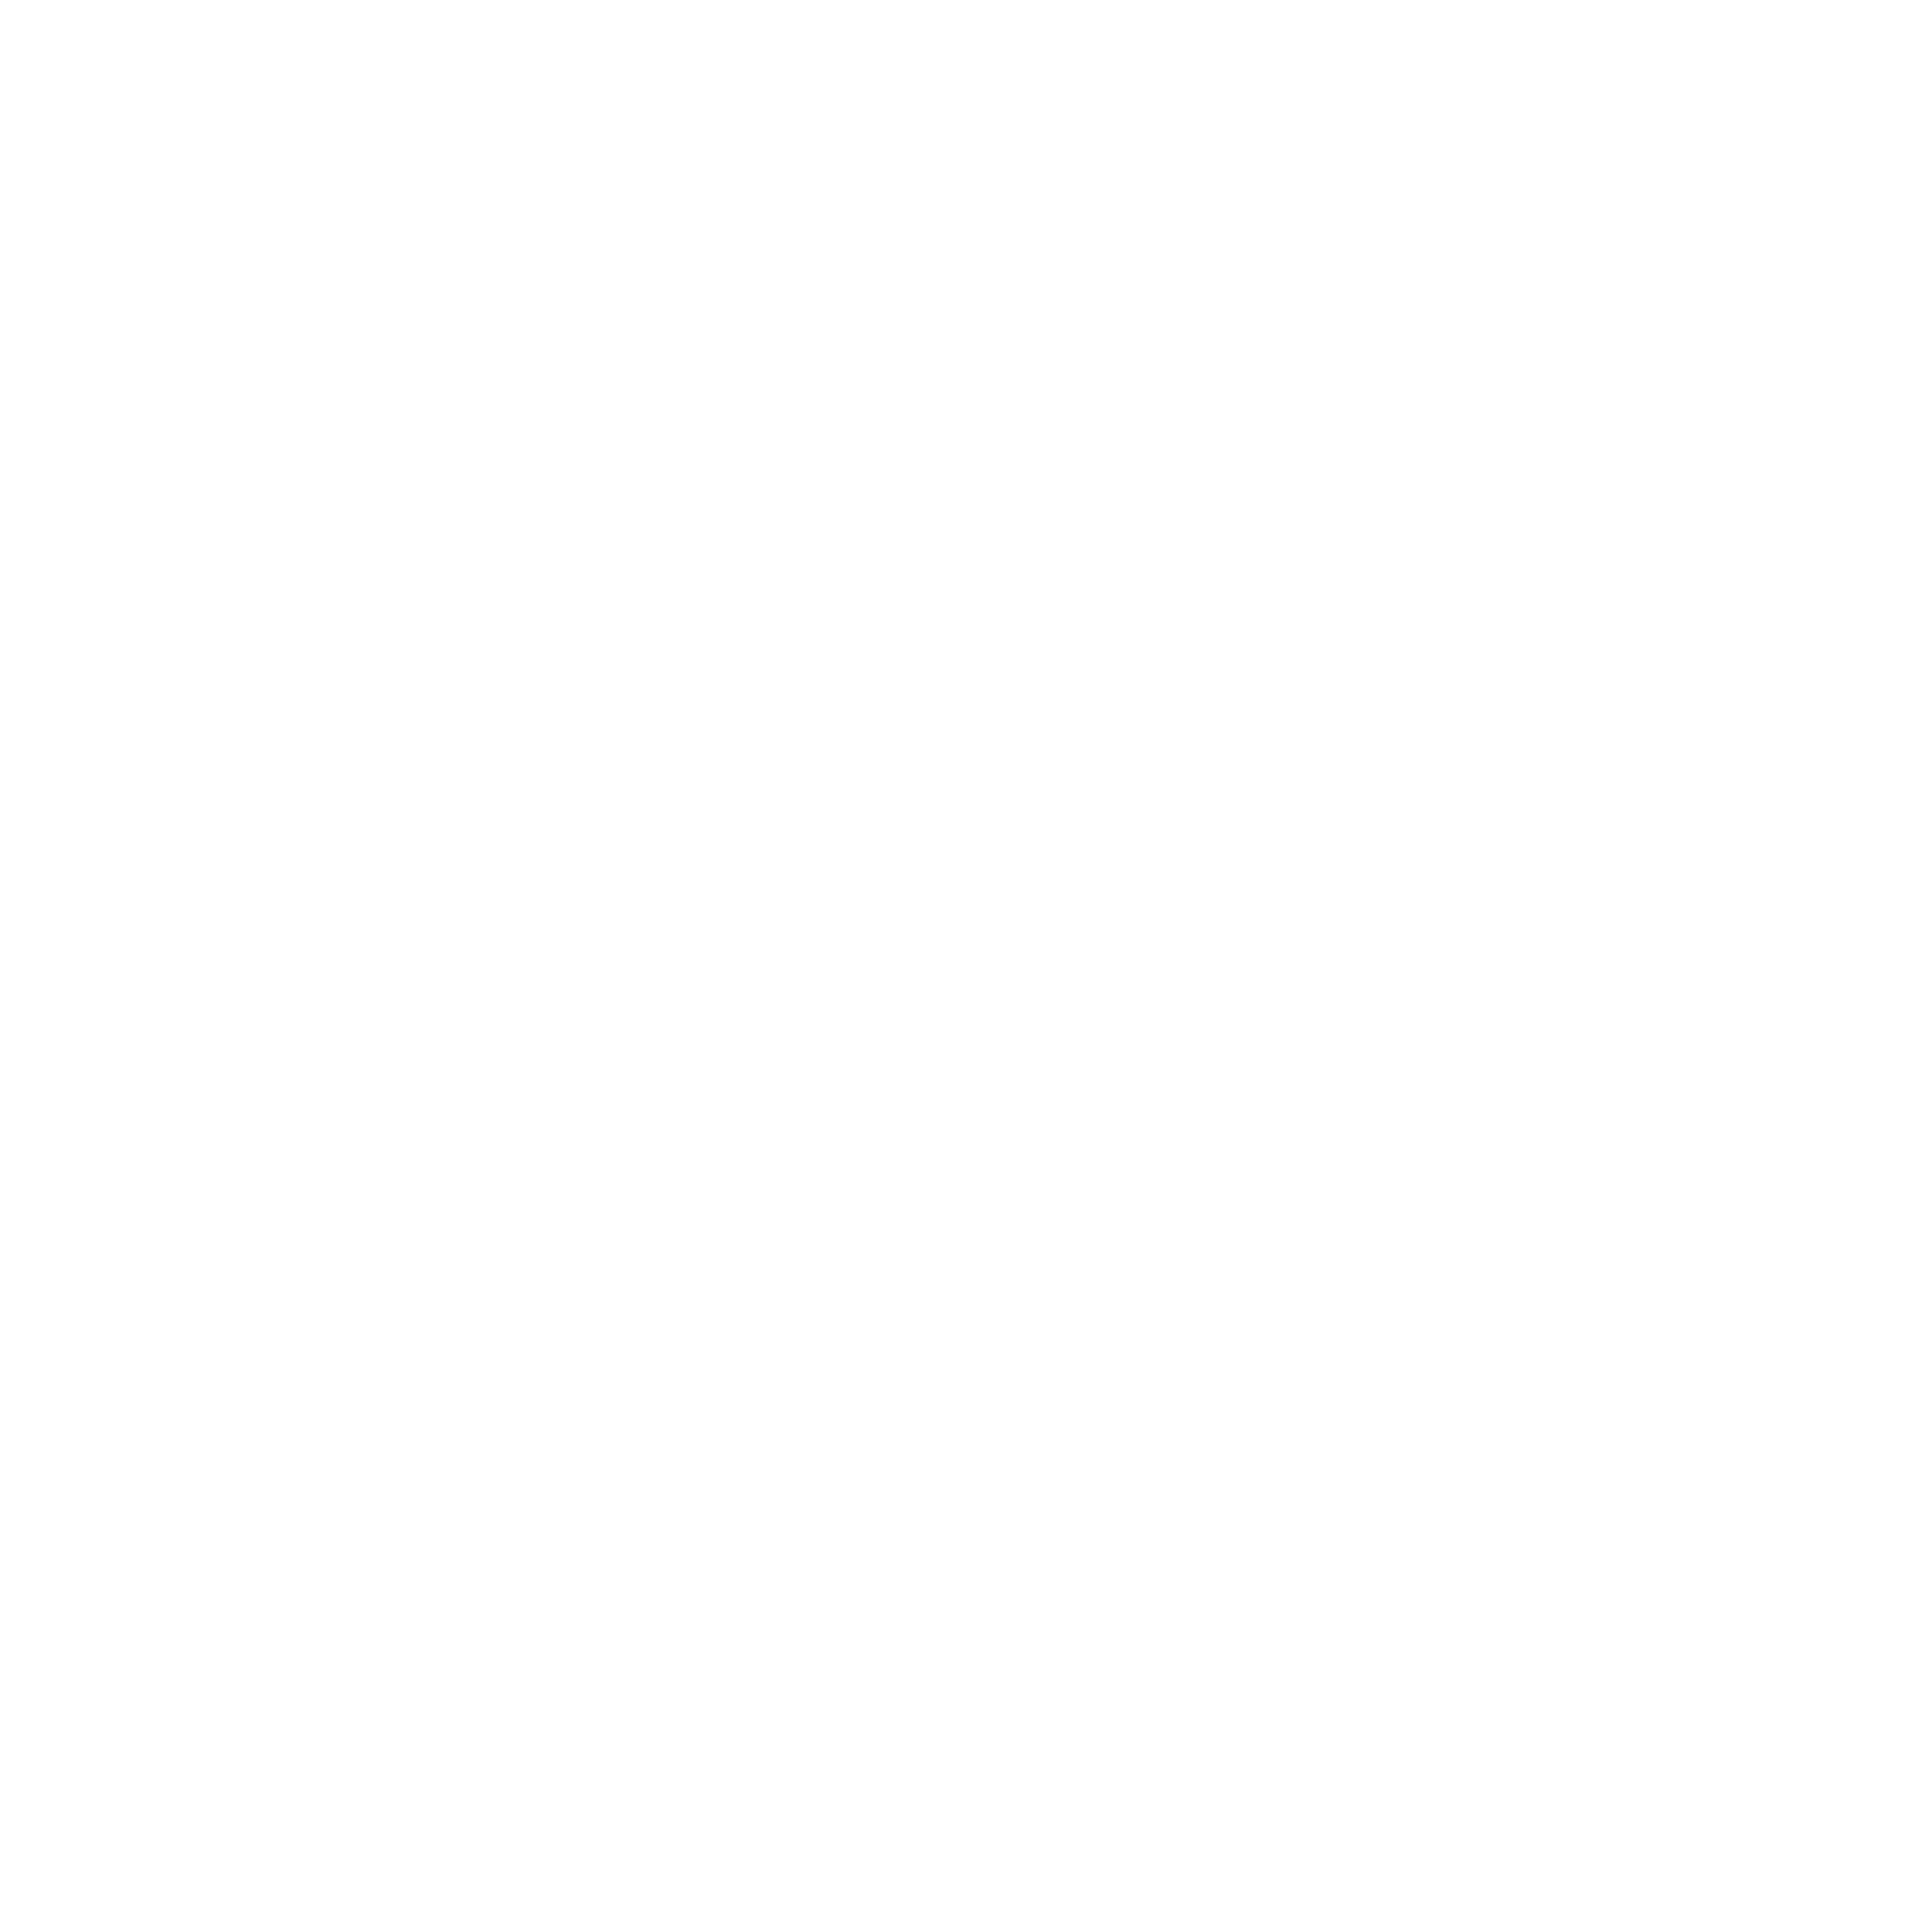 ReforestationDesignWhite.png